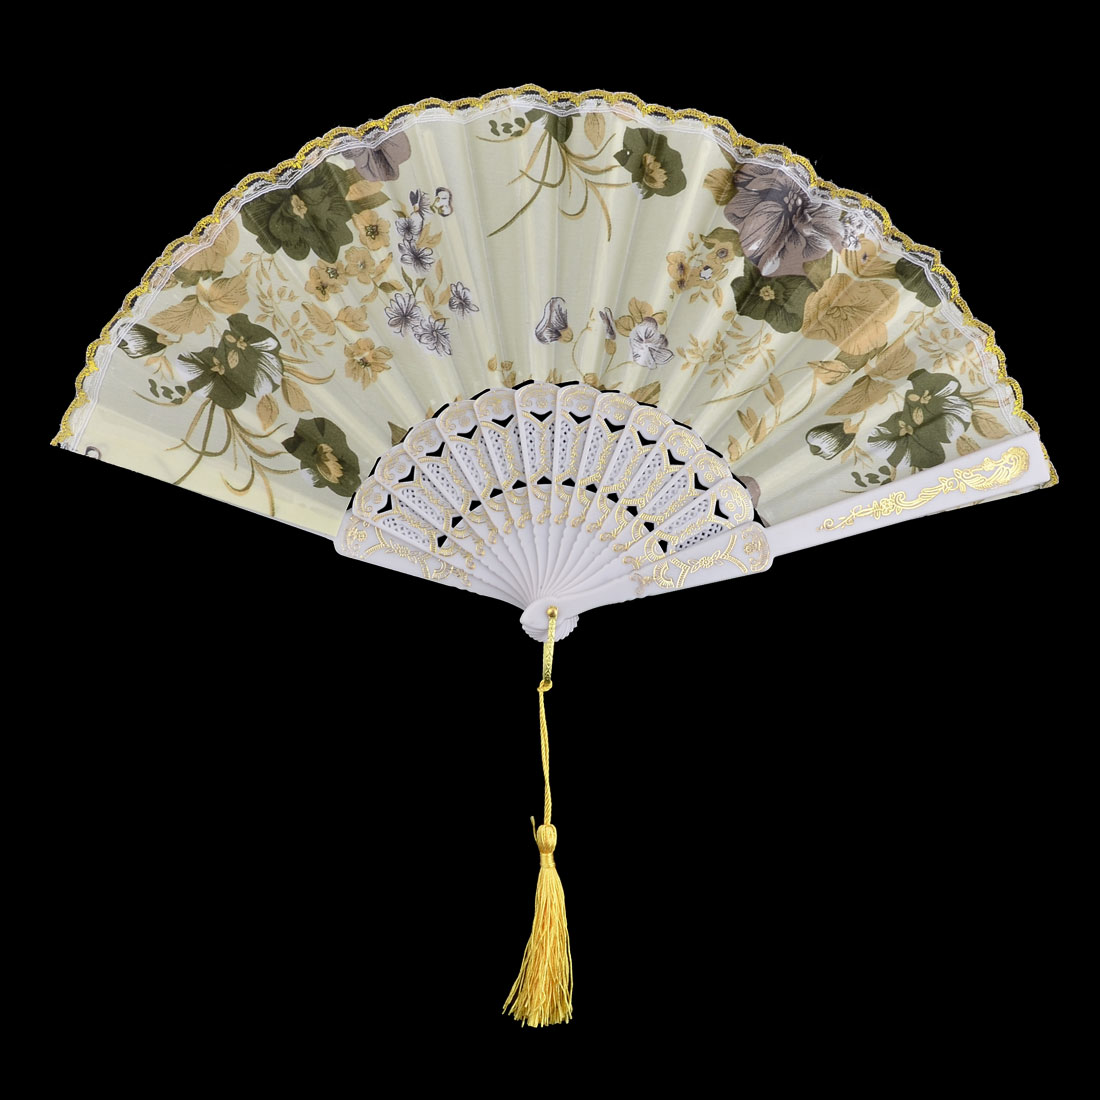 Household Wedding Plastic Flower Pattern Folding Cooling Hand Fan 23.5cm Length - image 3 of 5